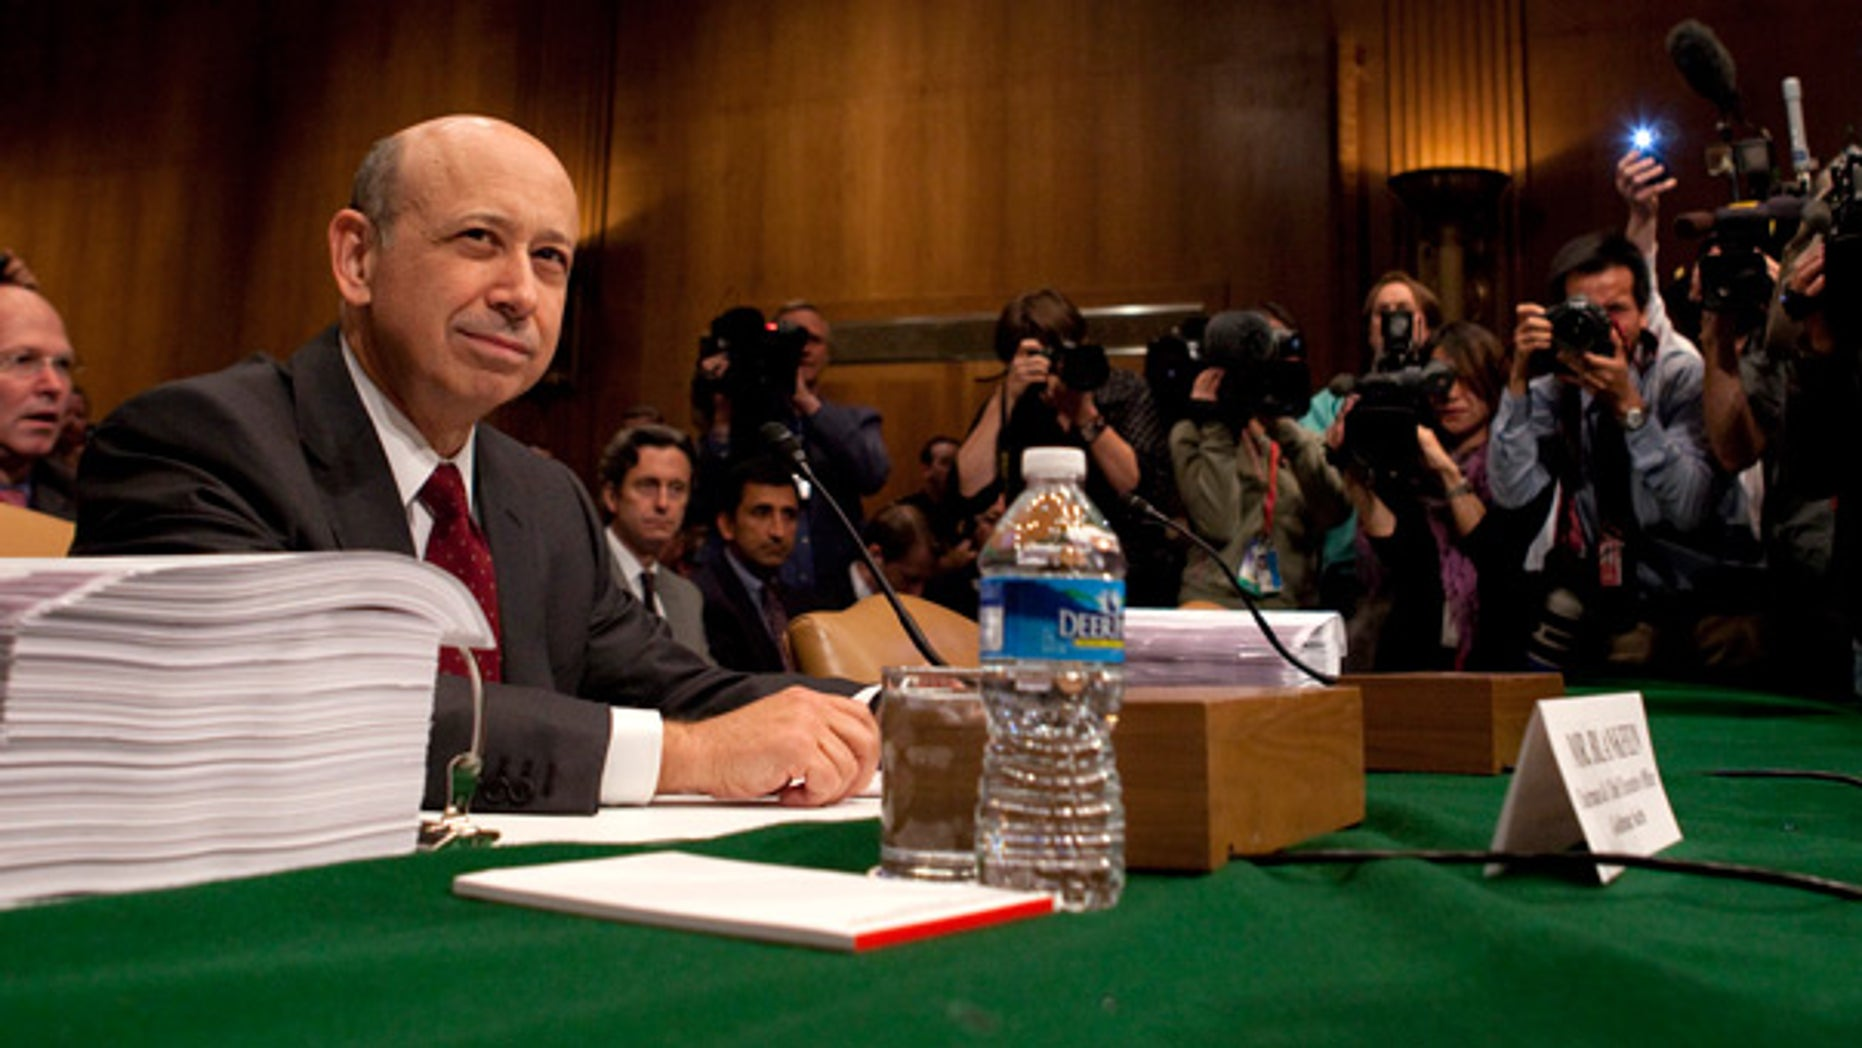 April 27: Goldman Sachs chairman and CEO Lloyd Blankfein testifies before the Senate on Capitol Hill.